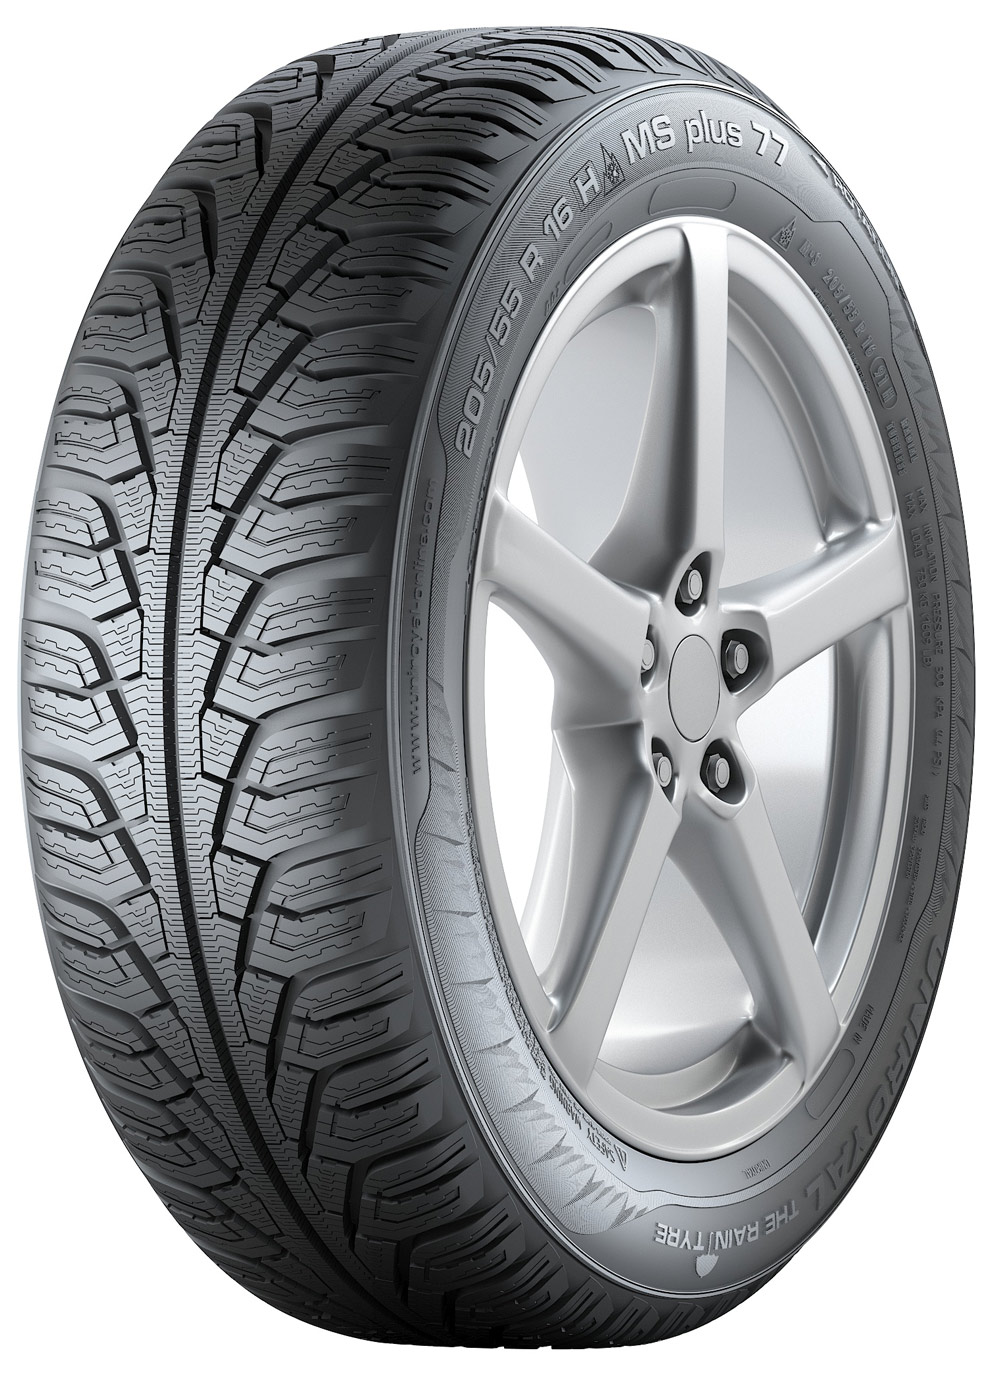 UNIROYAL MS PLUS 77 175/65 R 14